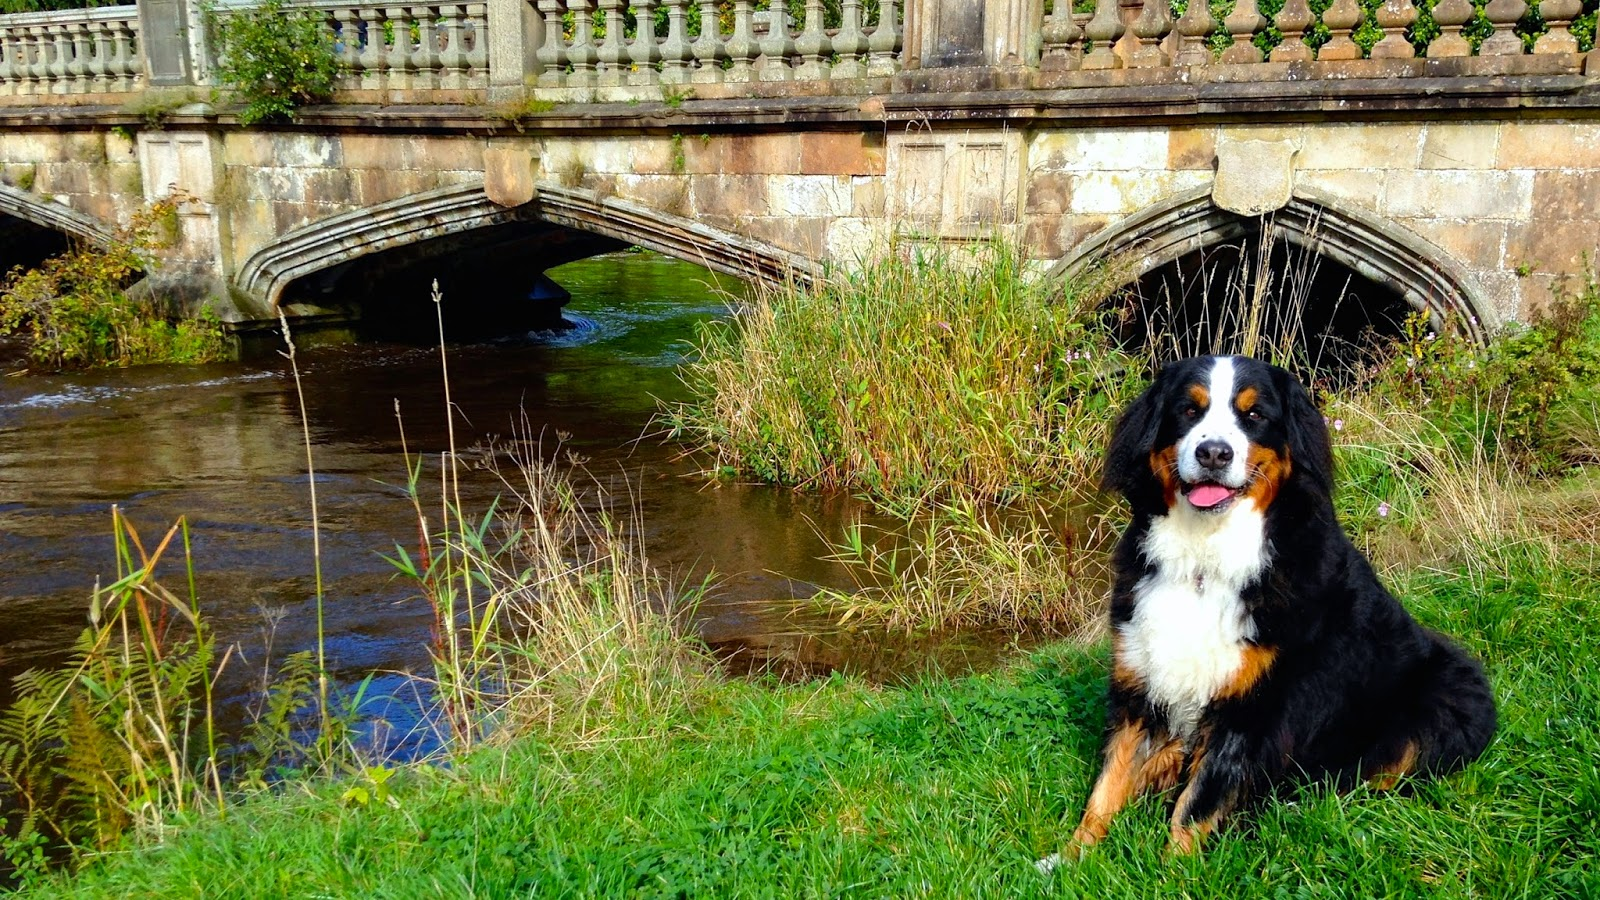 Mattie on the banks of the River Clyde in Glasgow